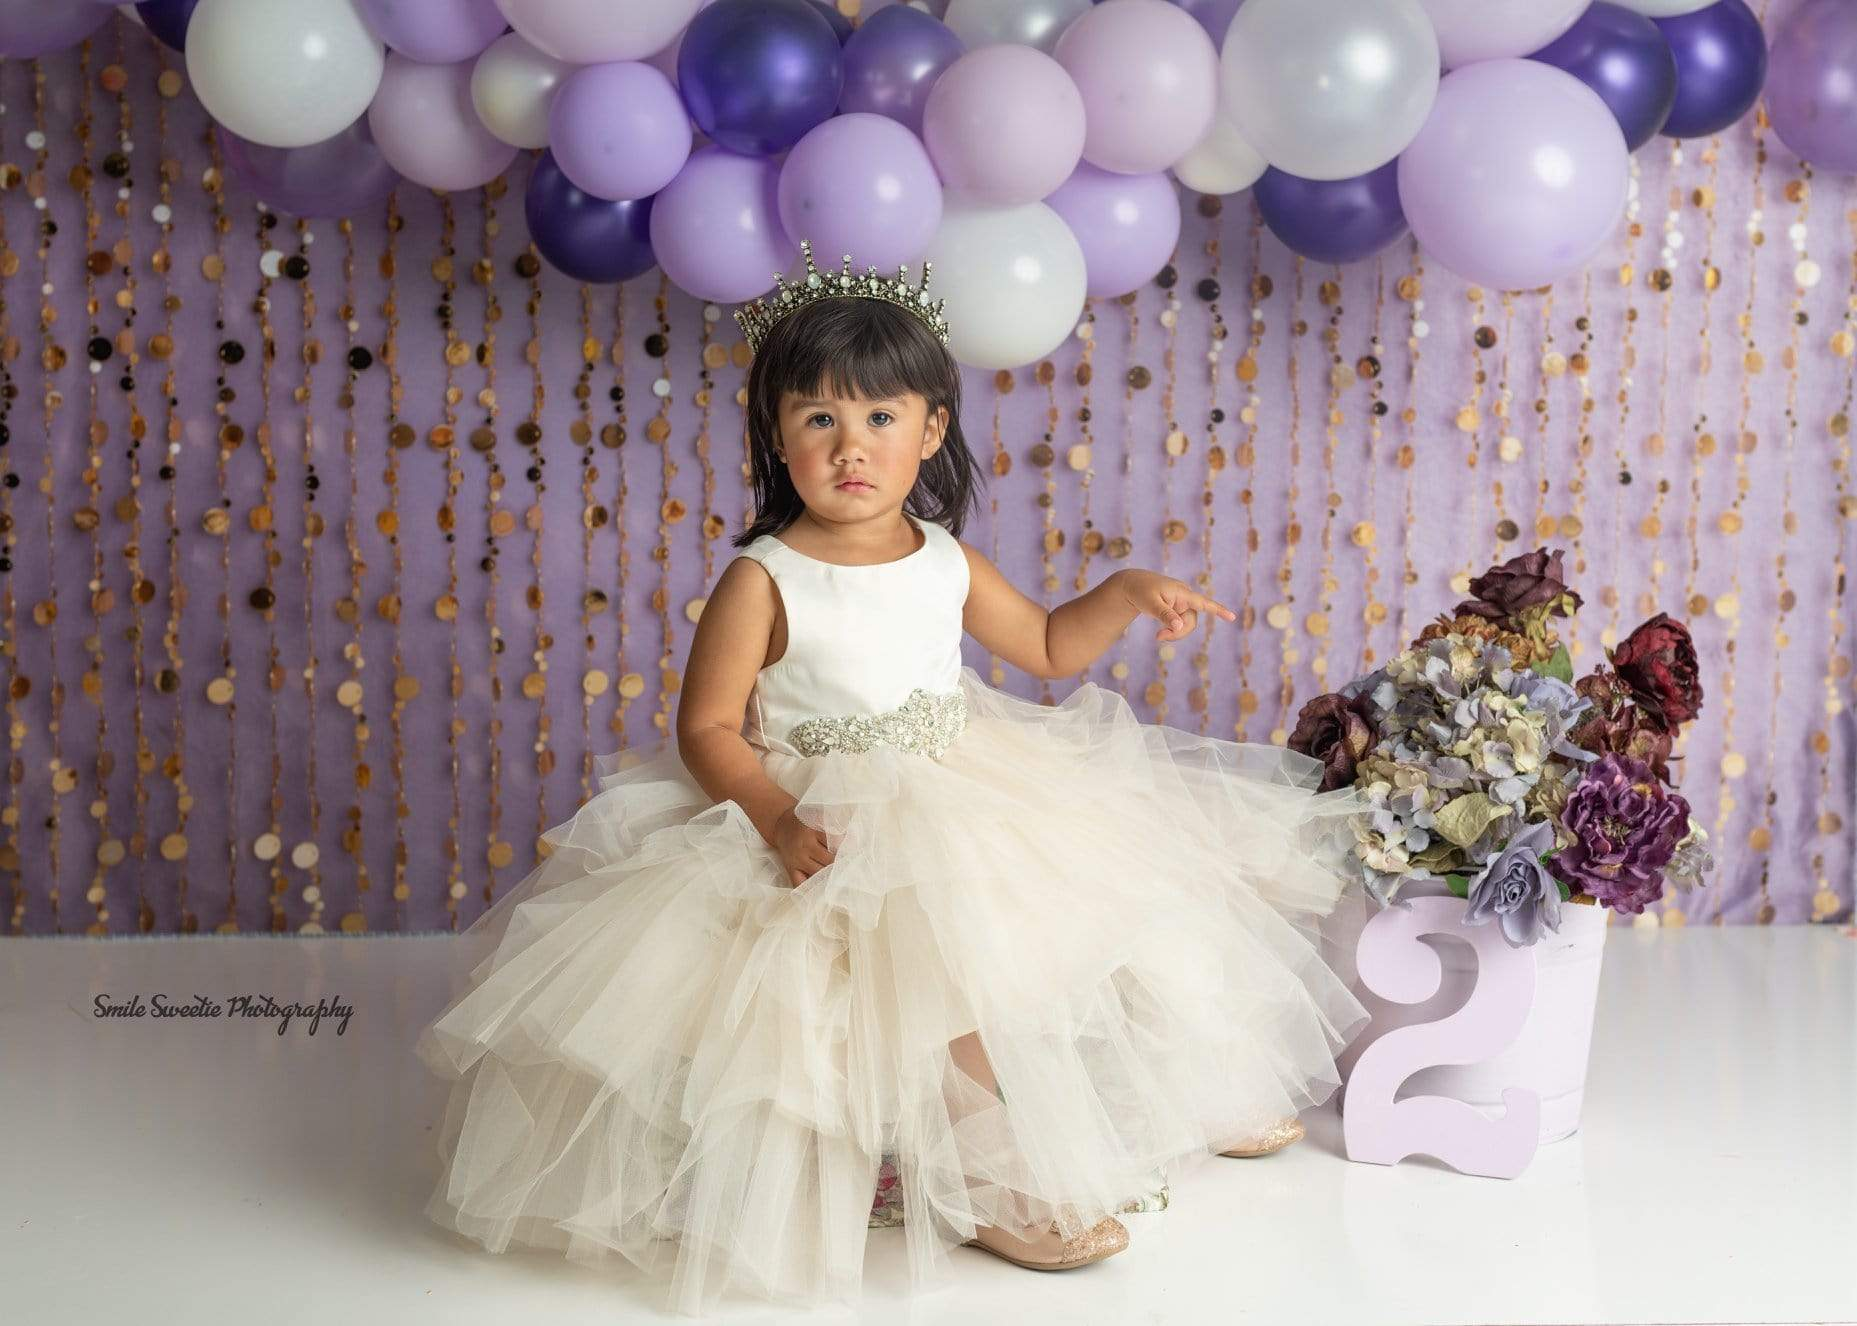 Load image into Gallery viewer, Katebackdrop£ºKate Purple Gold Dots Children Backdrop for Photography Designed by Lisa B